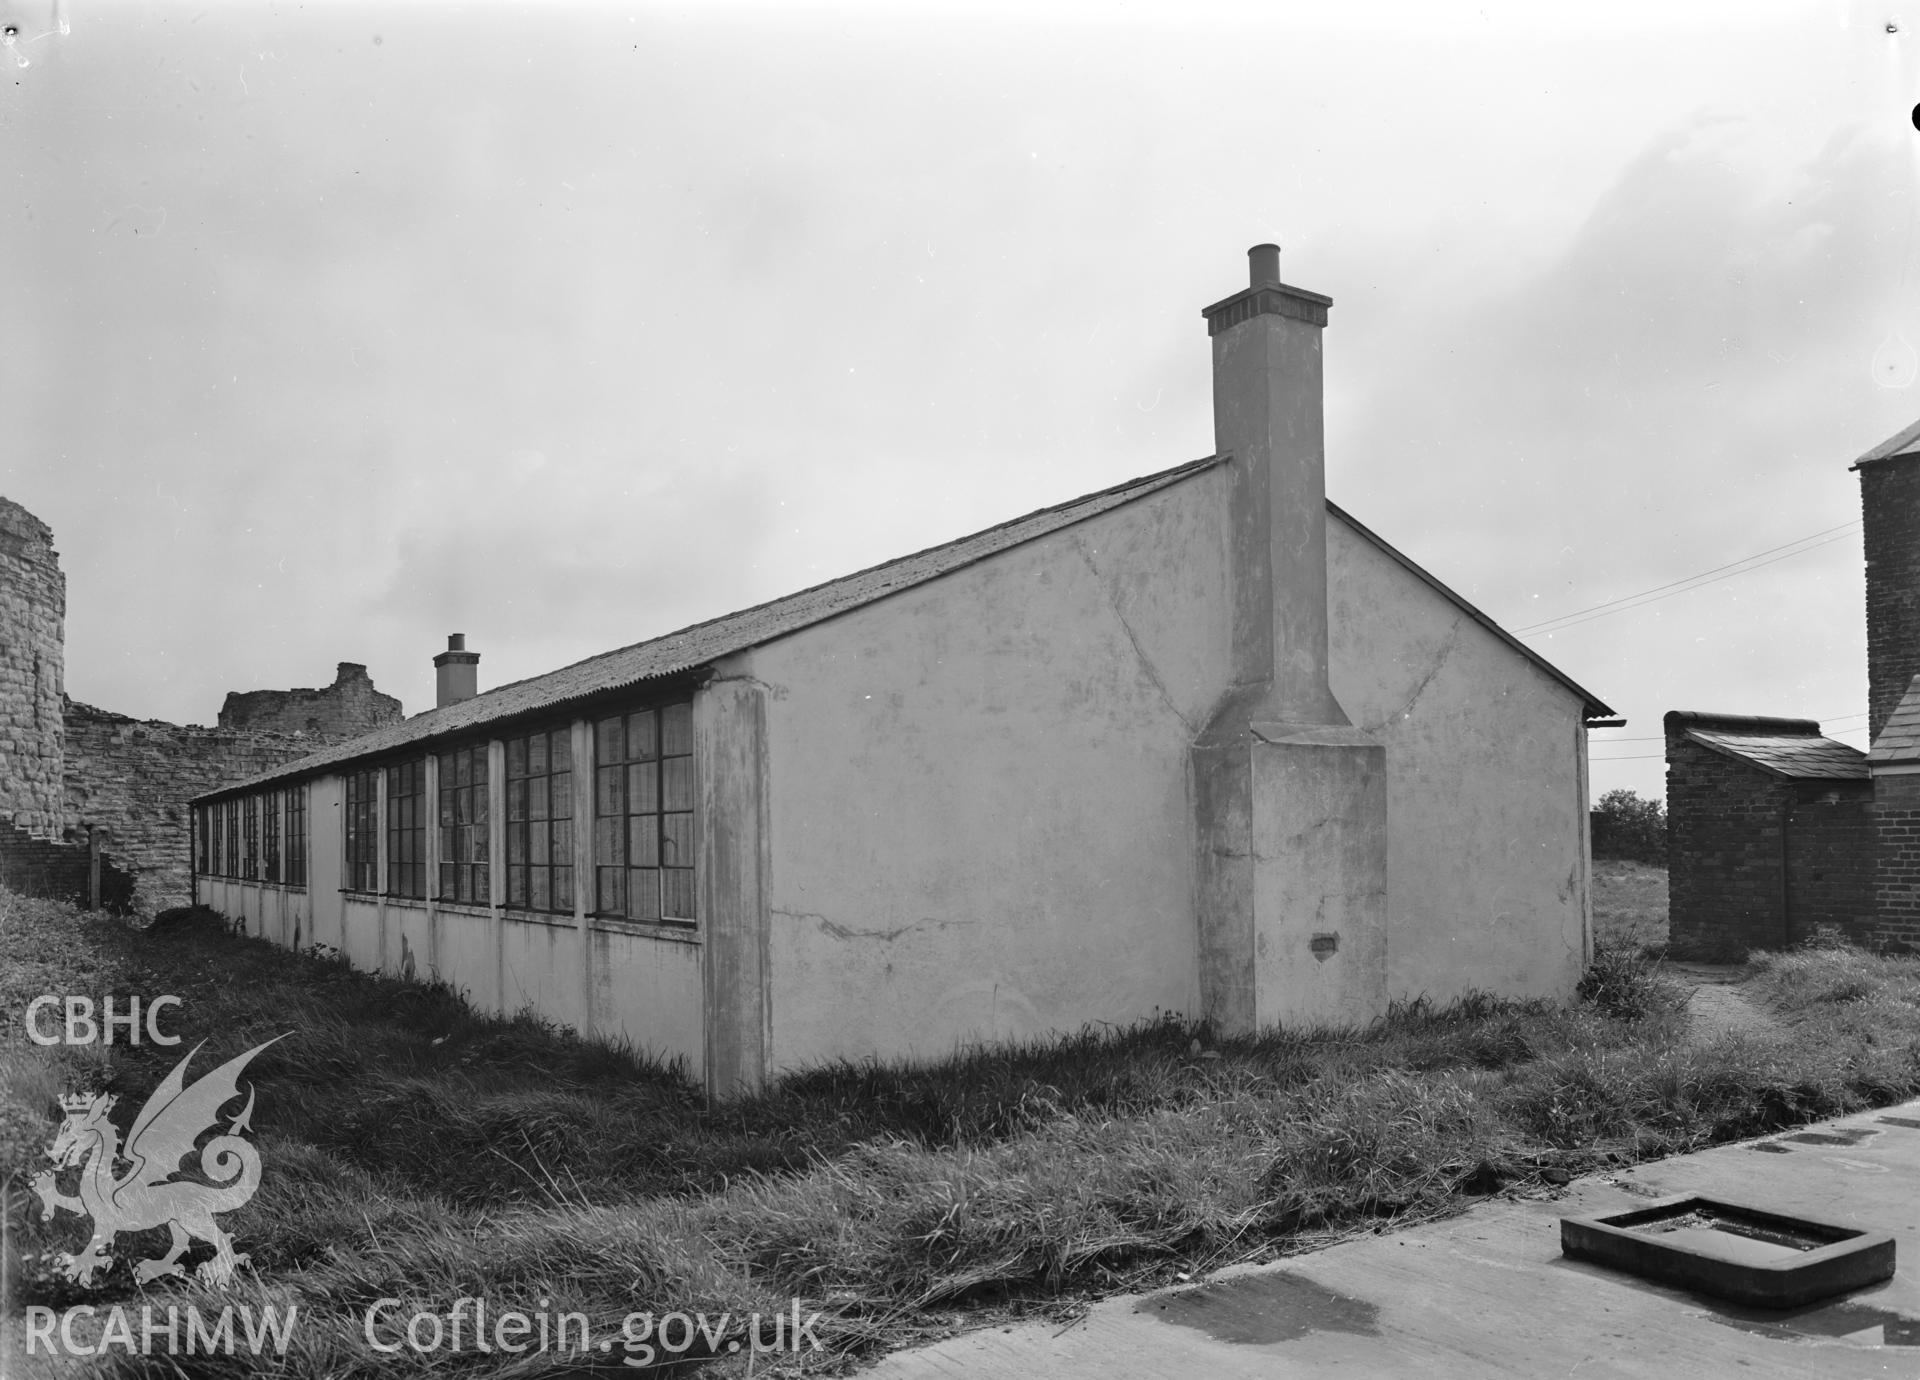 D.O.E photograph of Flint Gaol - army cadets hut from south west. In castle outer ward (since removed).